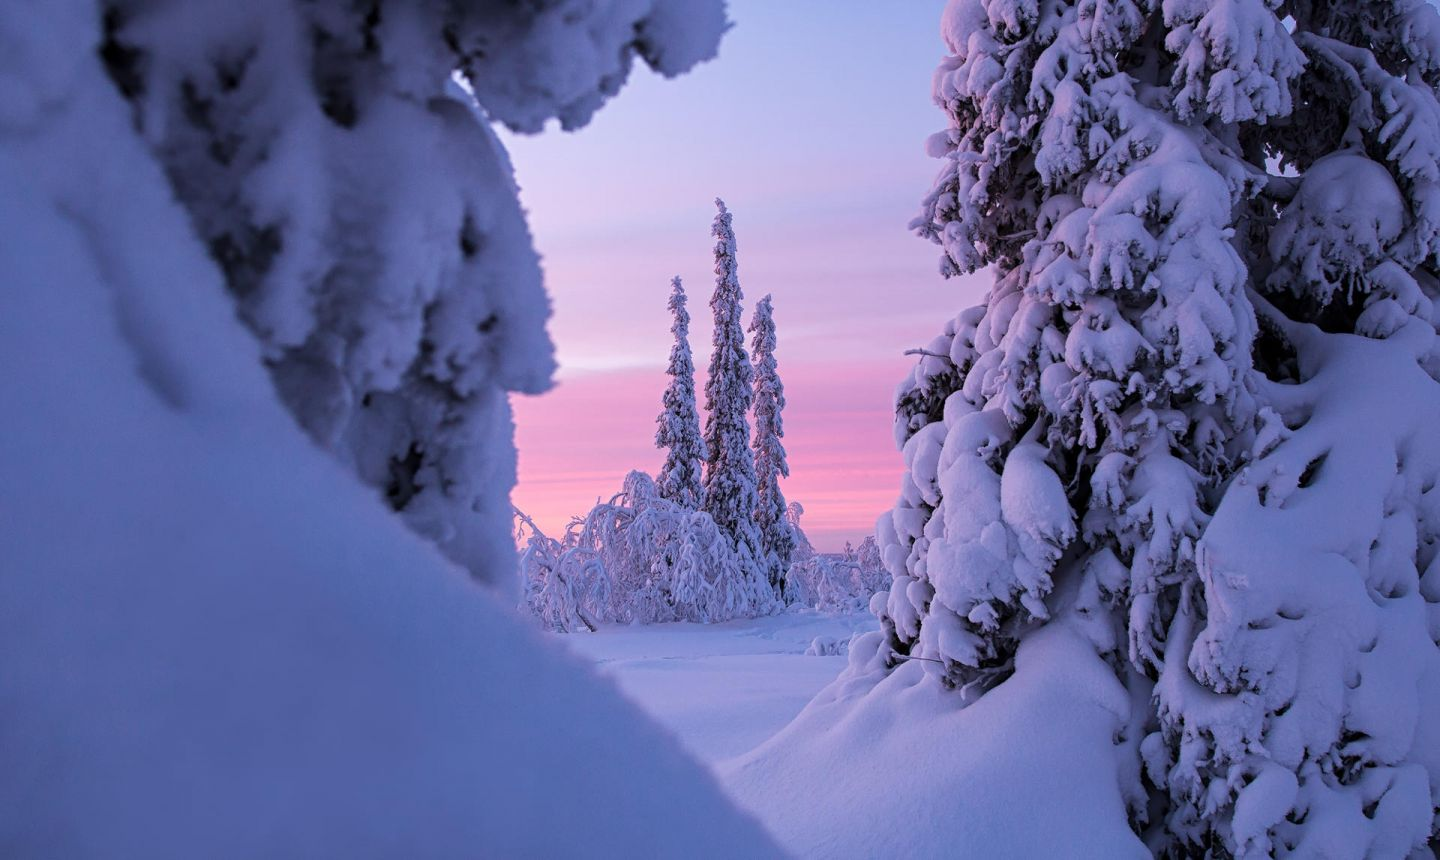 Snow capped trees in winter during Polar Night